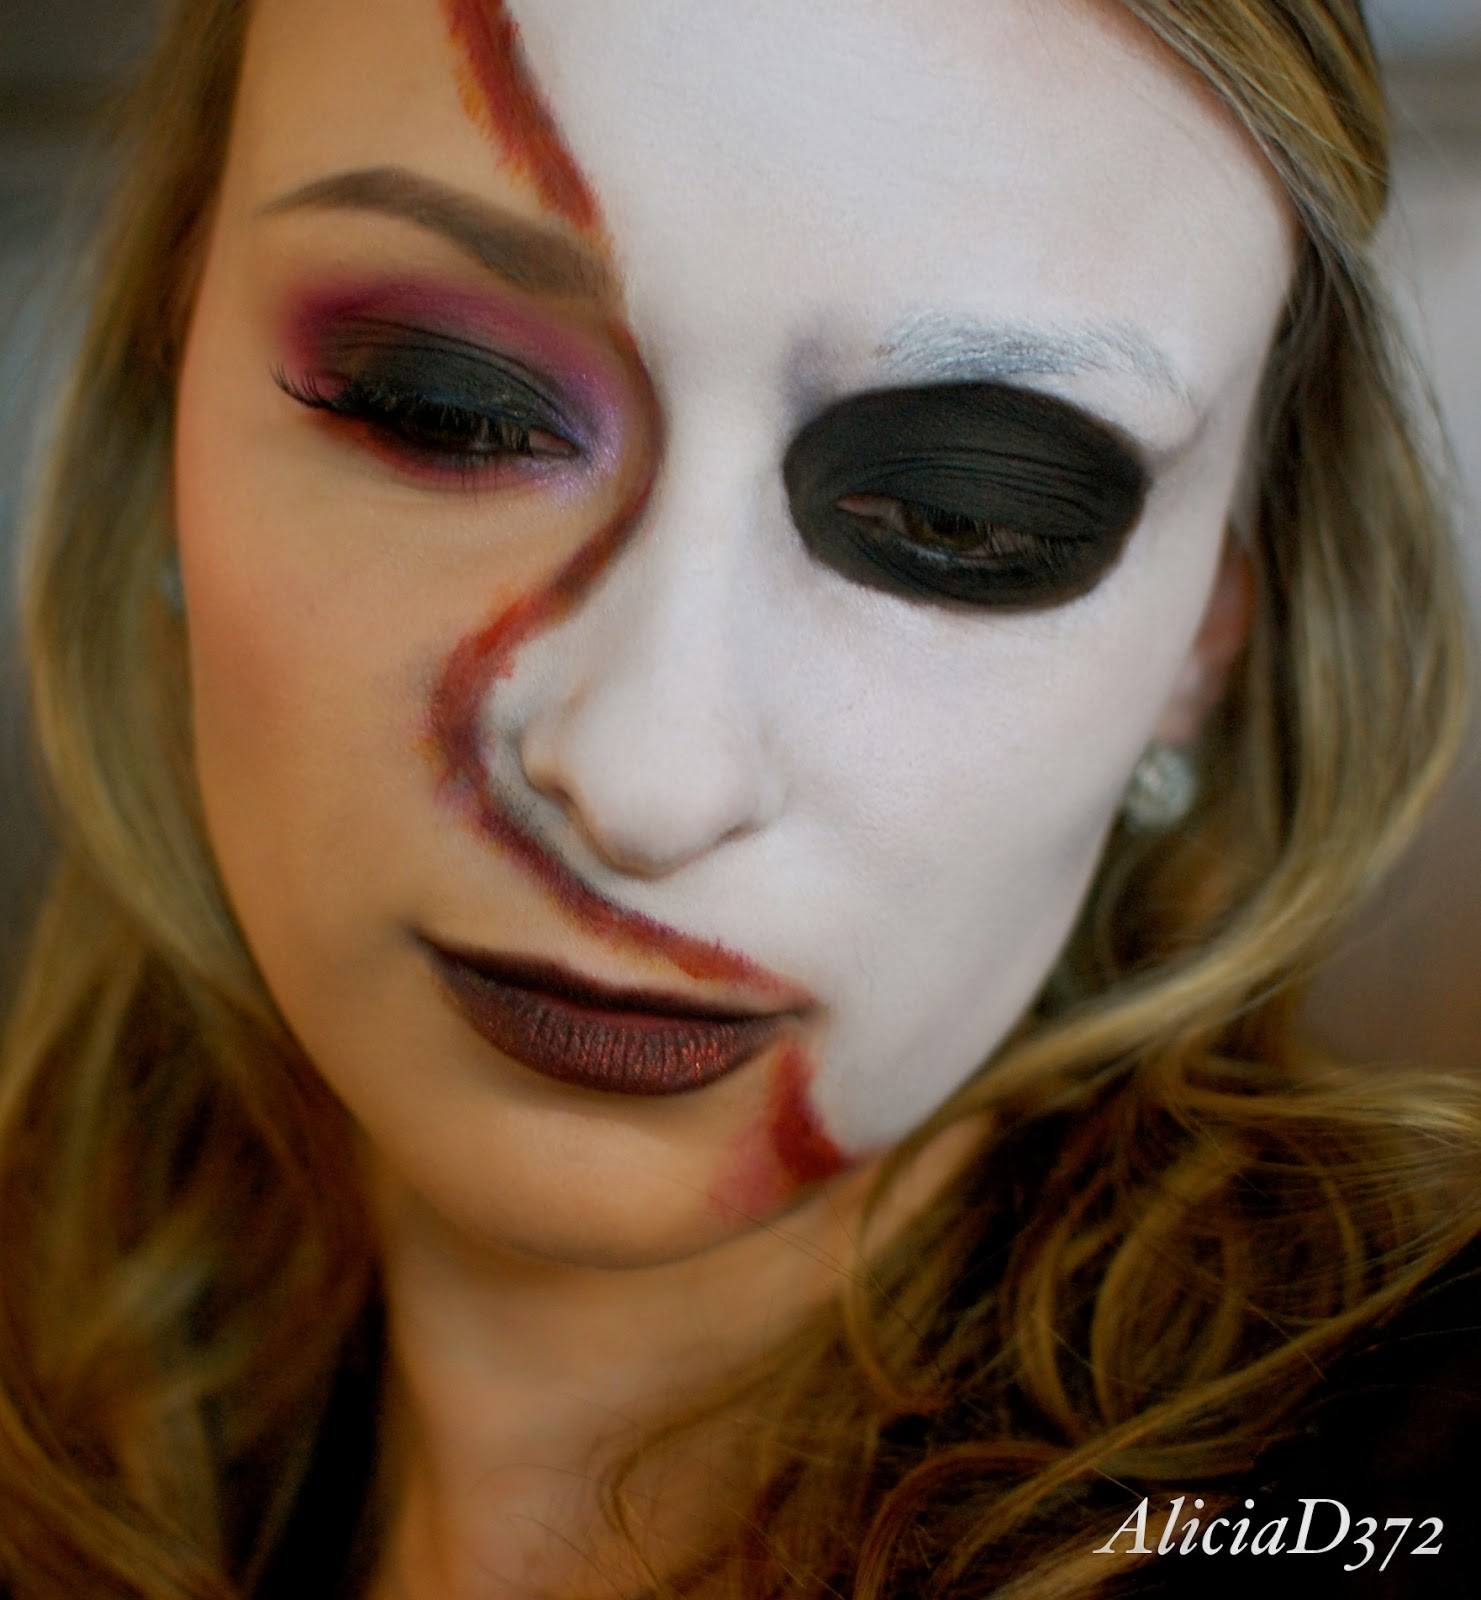 AliciaD372 : Halloween Tutorial: Phantom of the Opera!